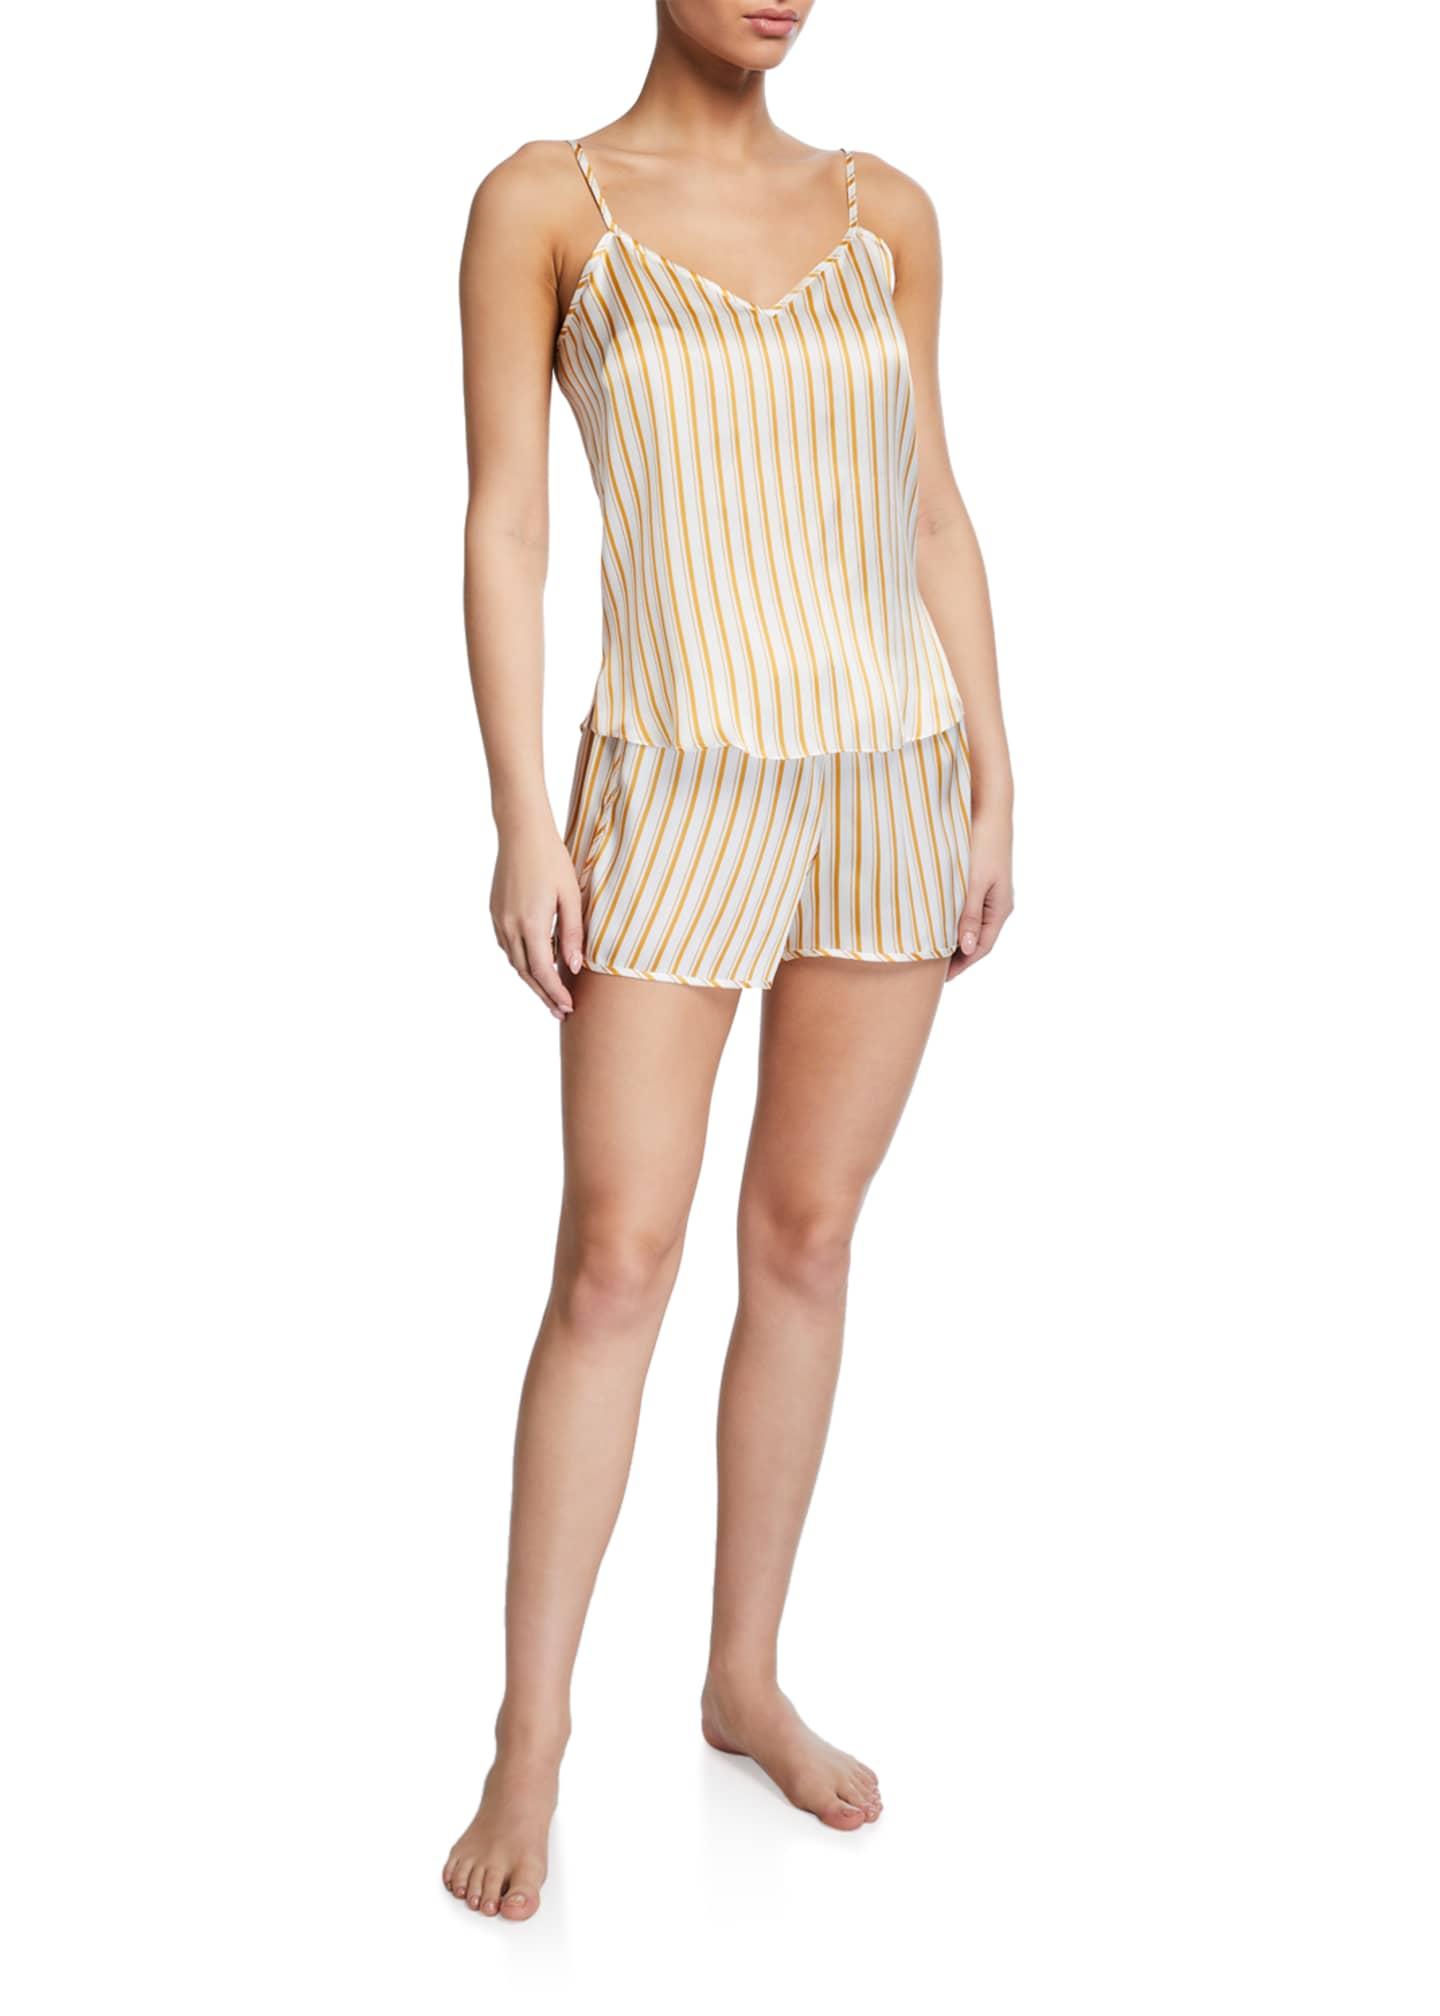 Derek Rose Brindisi Striped Camisole and Shorts Set